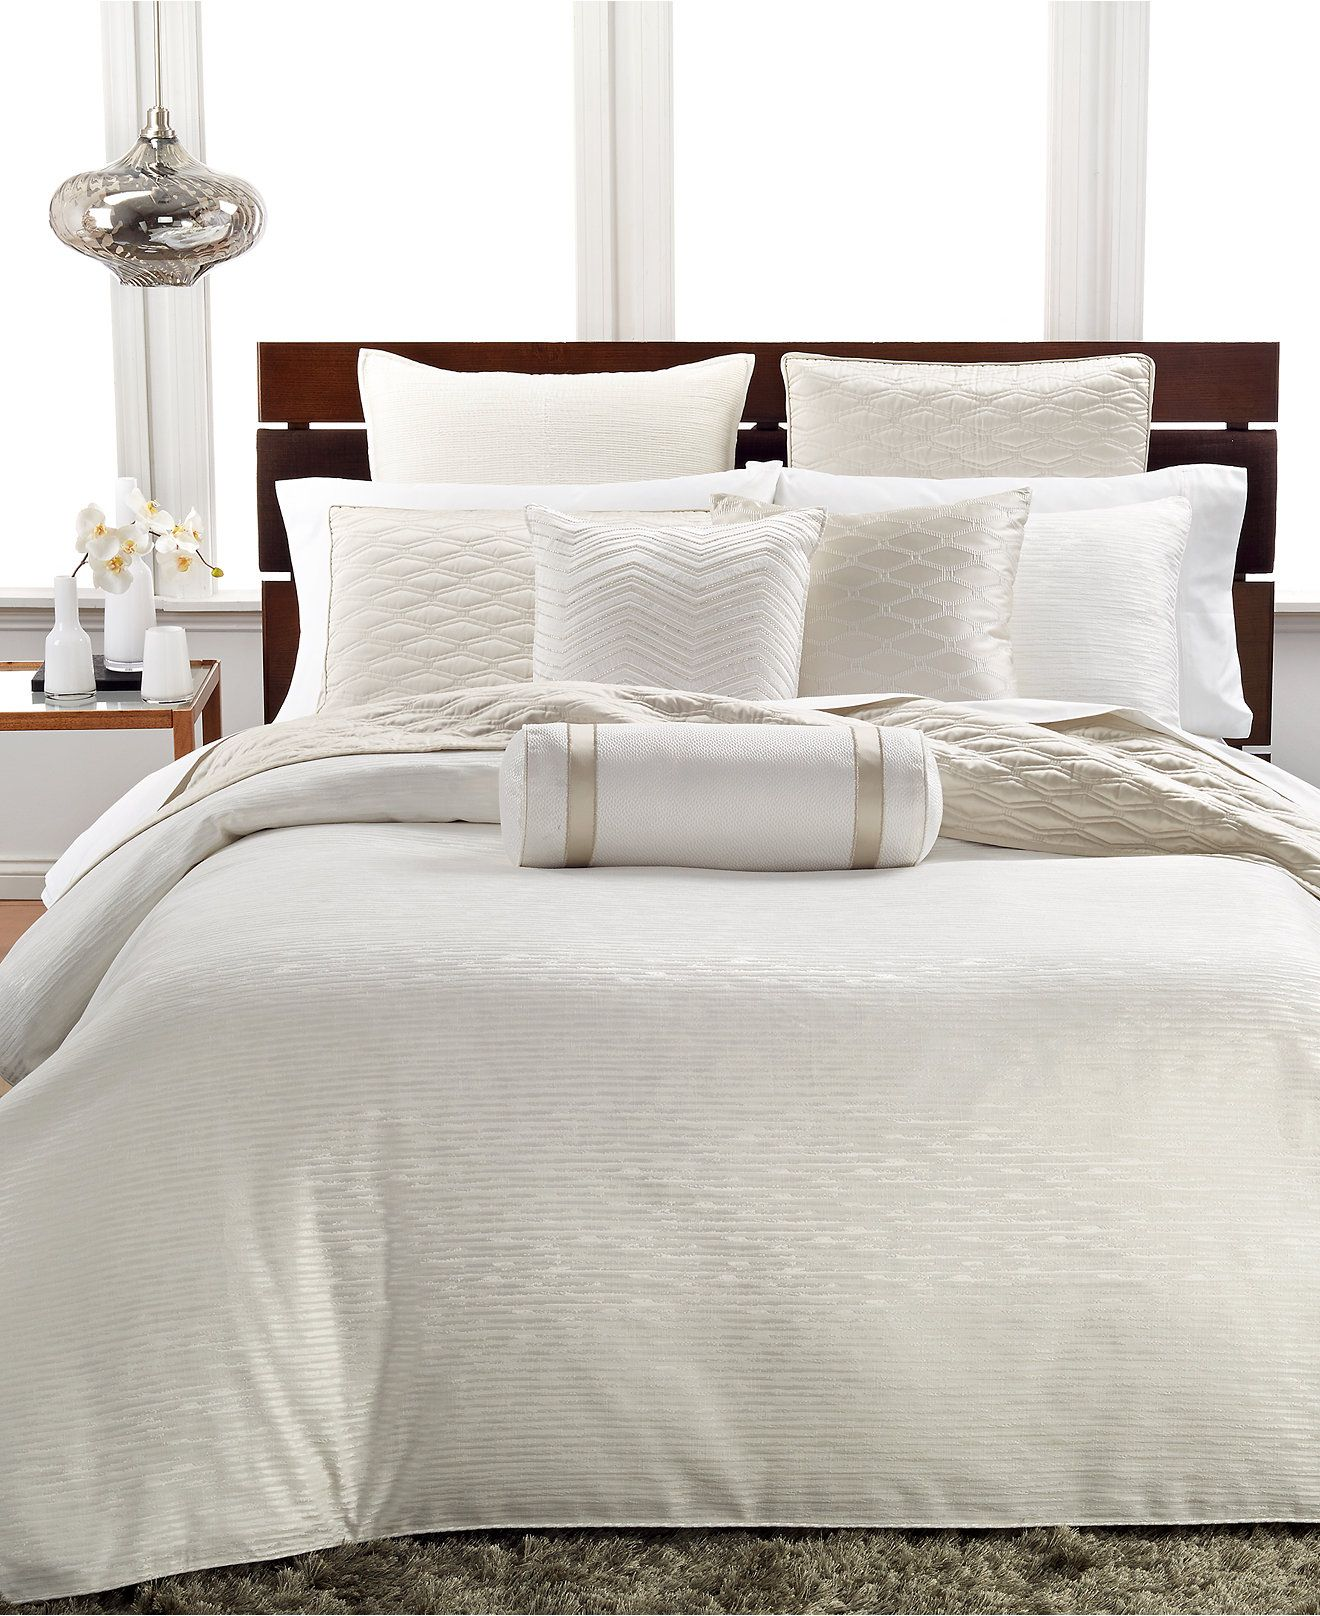 comforter prosecco king inc bedding useful sale fascinating tinybed us forter quilt concepts comforters pretty klein international most fresh macy sets clearance calvin down of macys